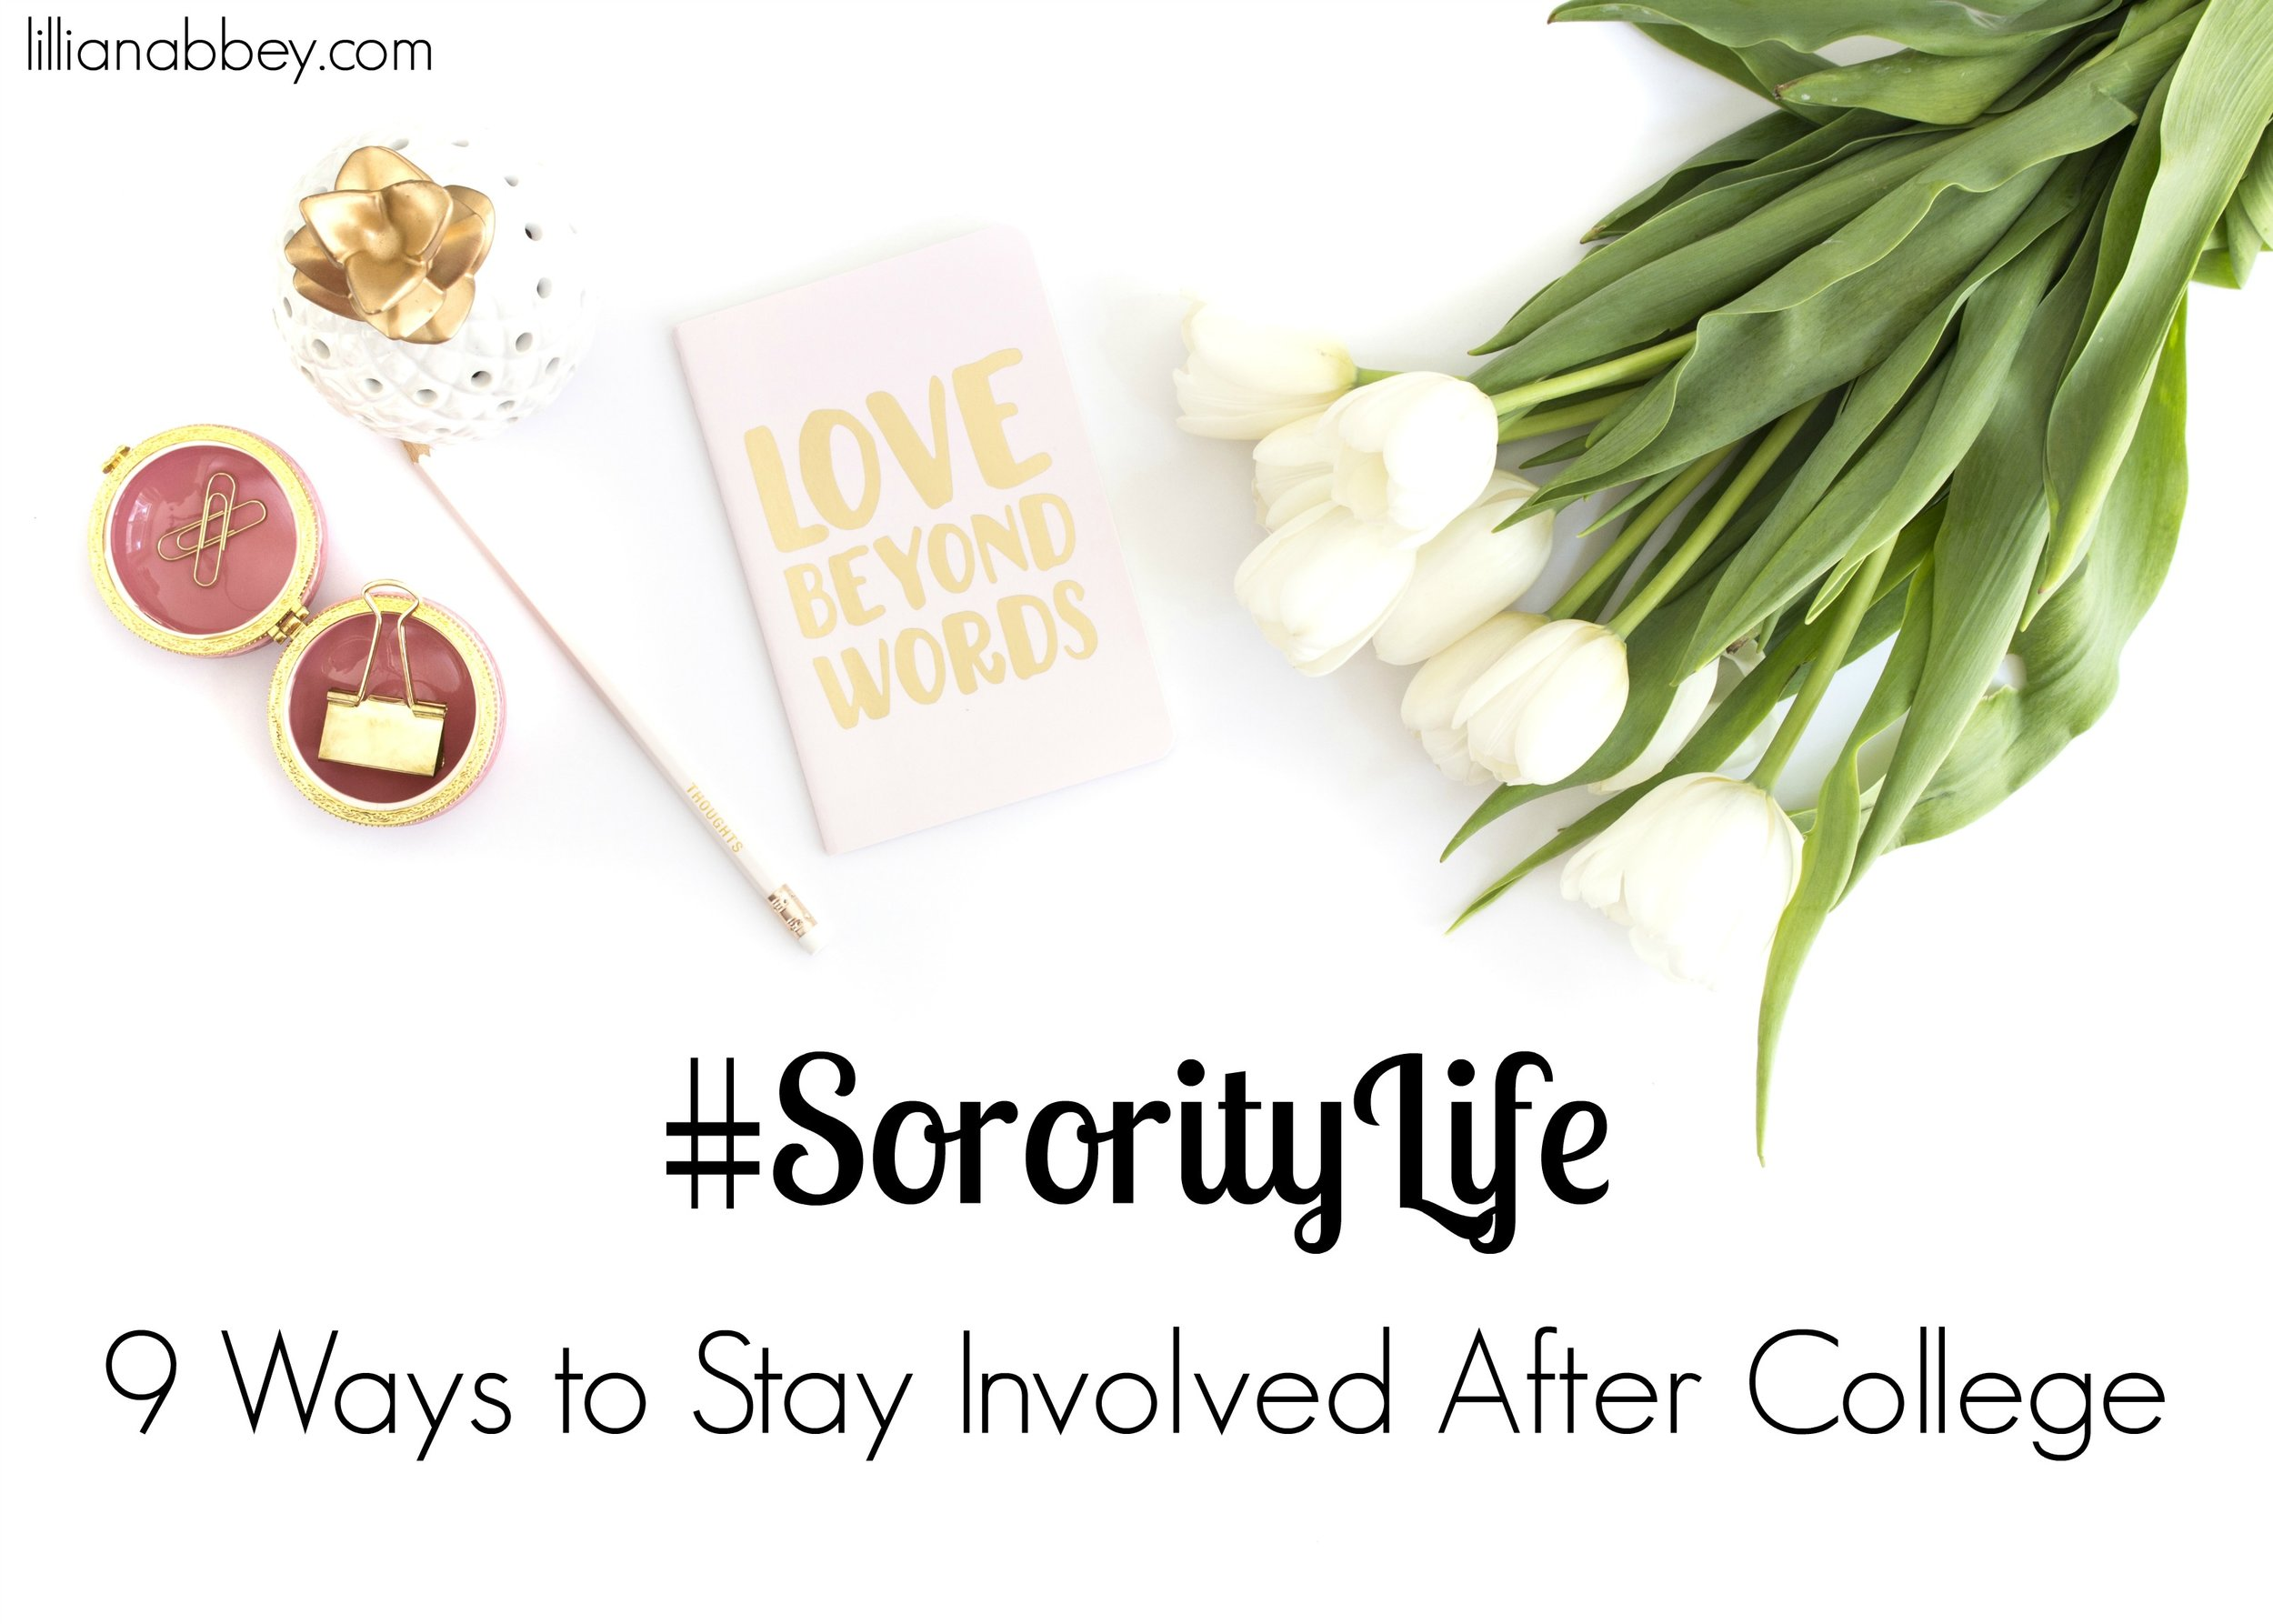 #SororityLife: 9 Ways to Stay Involved After College